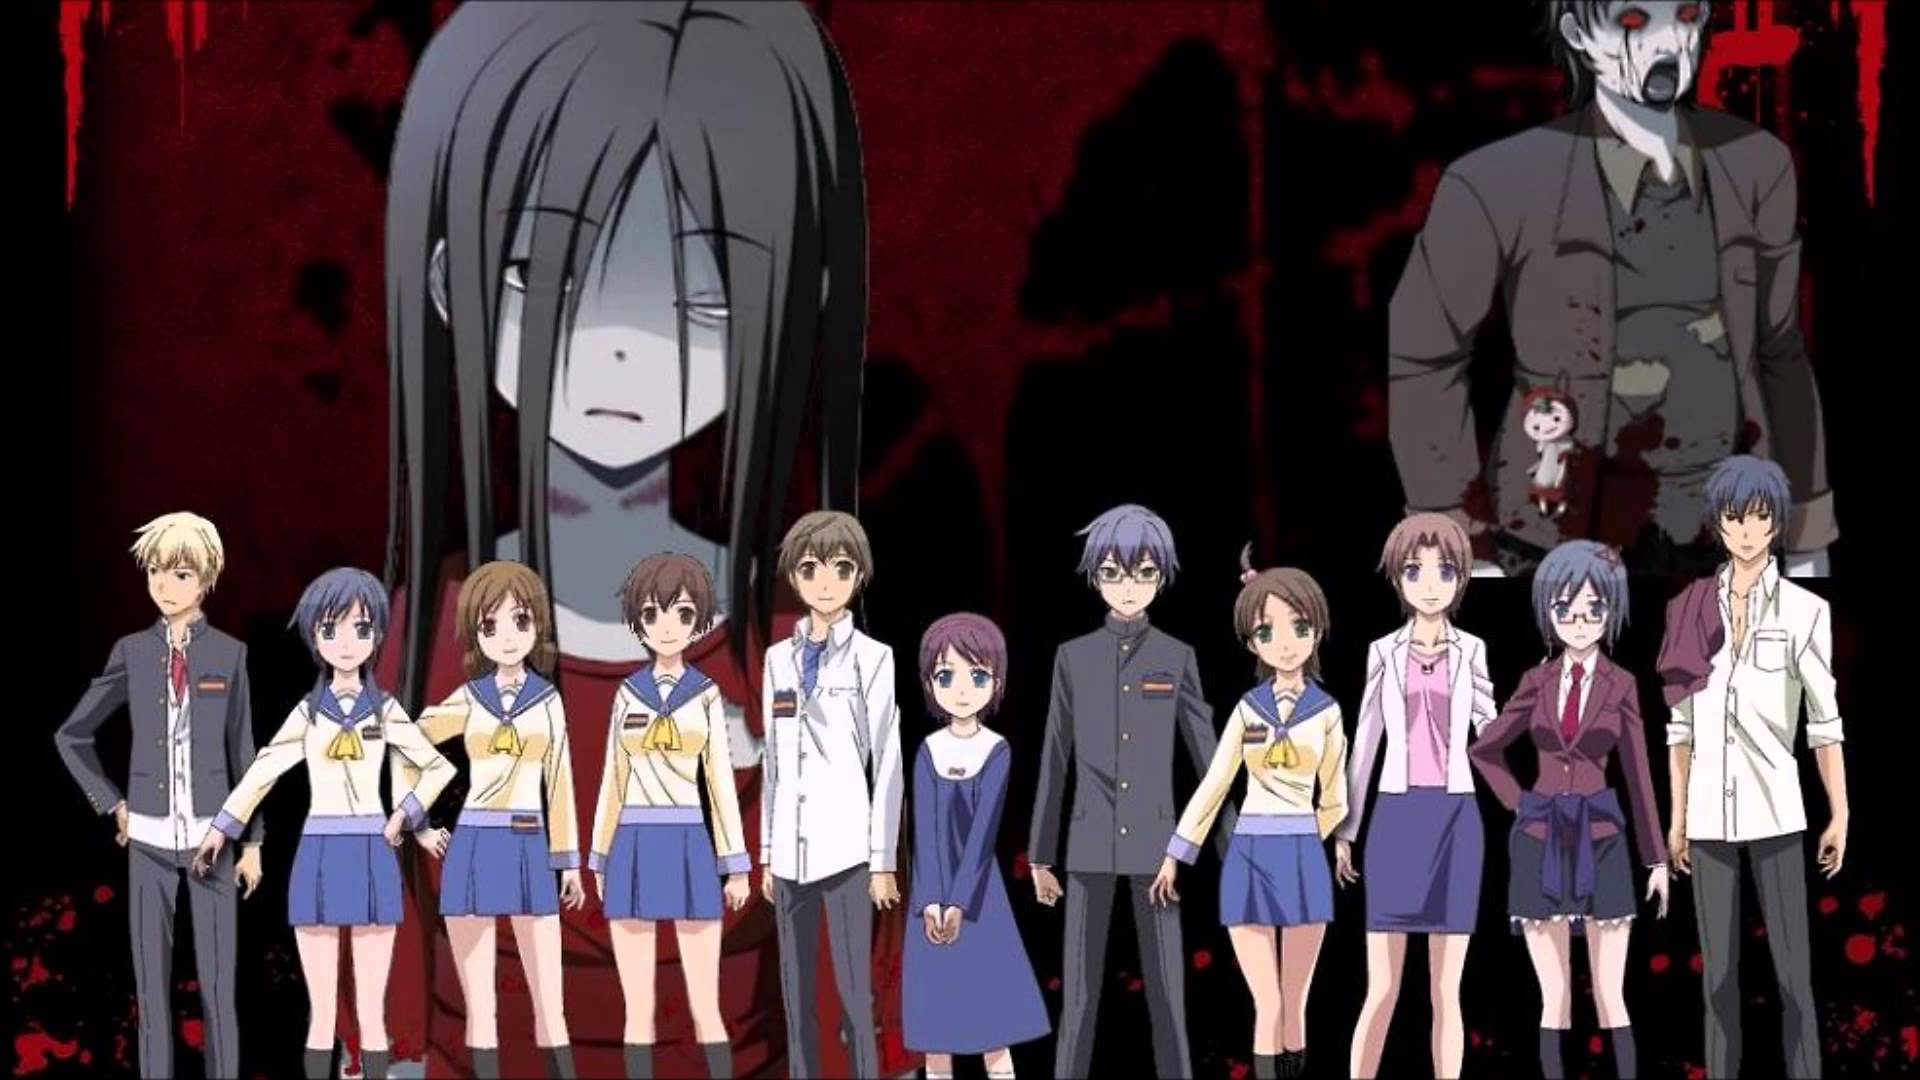 Anime Corpse Party: Tortured Souls